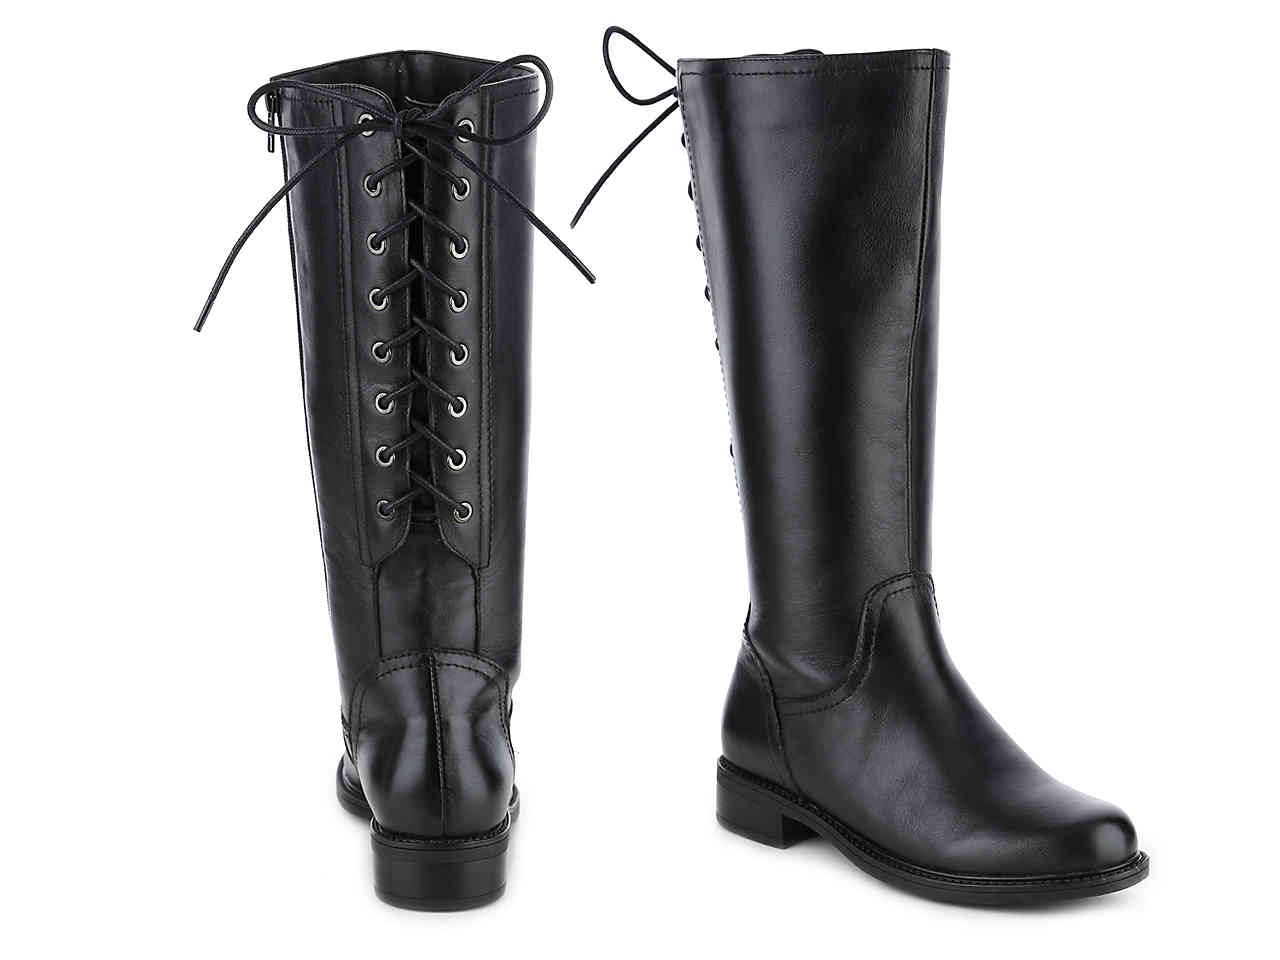 b1a56587886 27 Boots For Wide Calves That You ll Actually Want To Wear